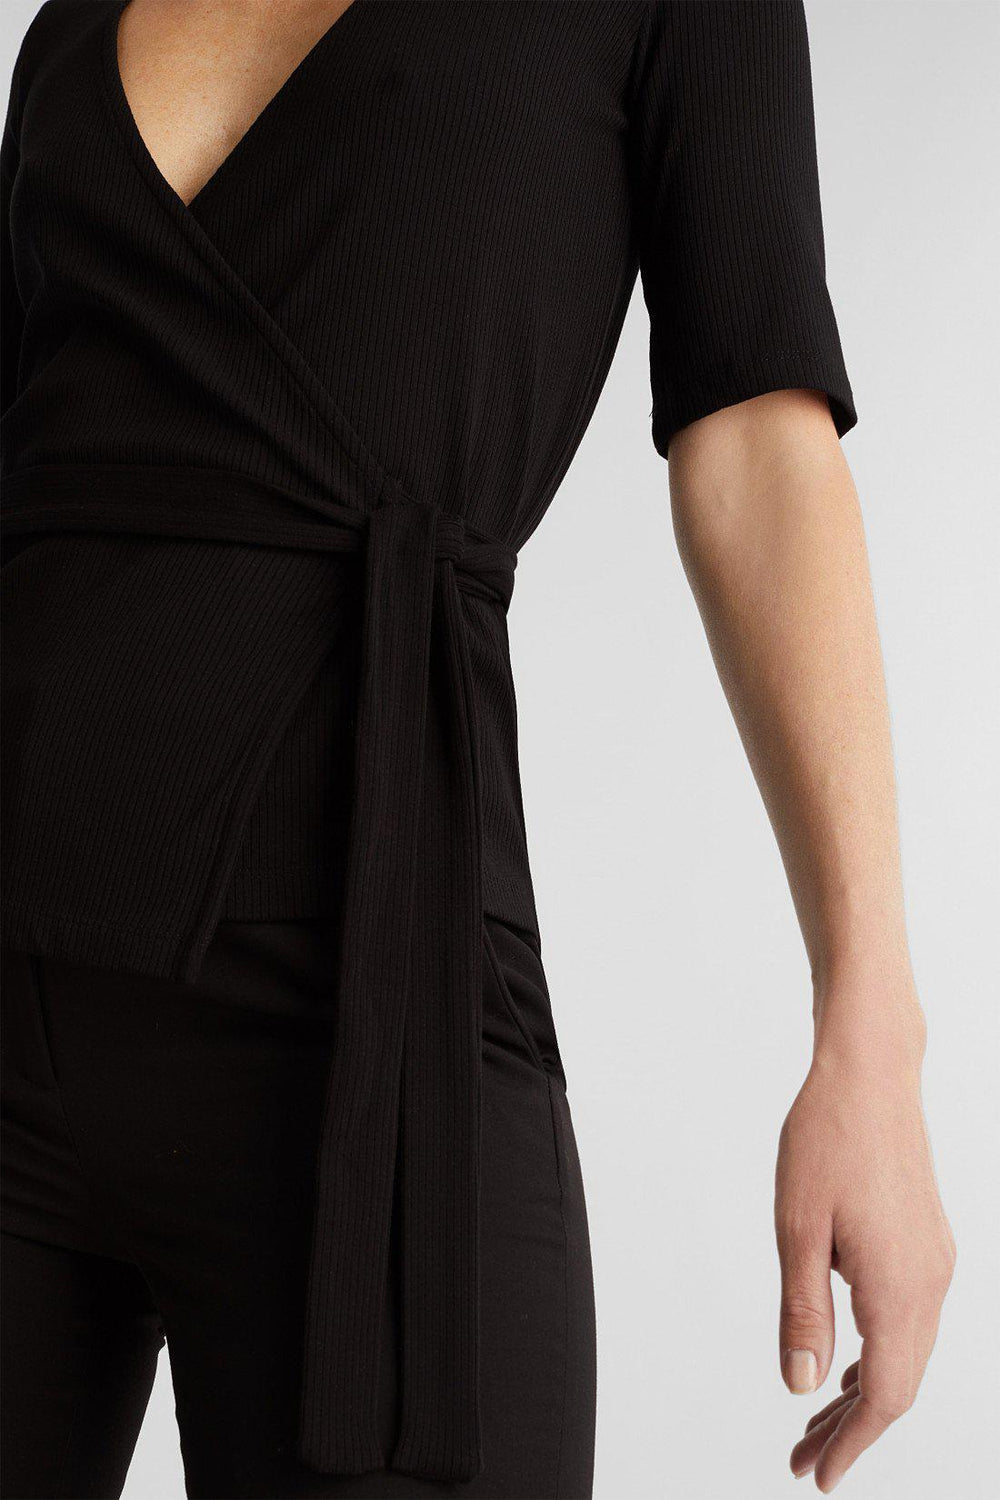 Esprit Wrap T-Shirt in Black-The Trendy Walrus